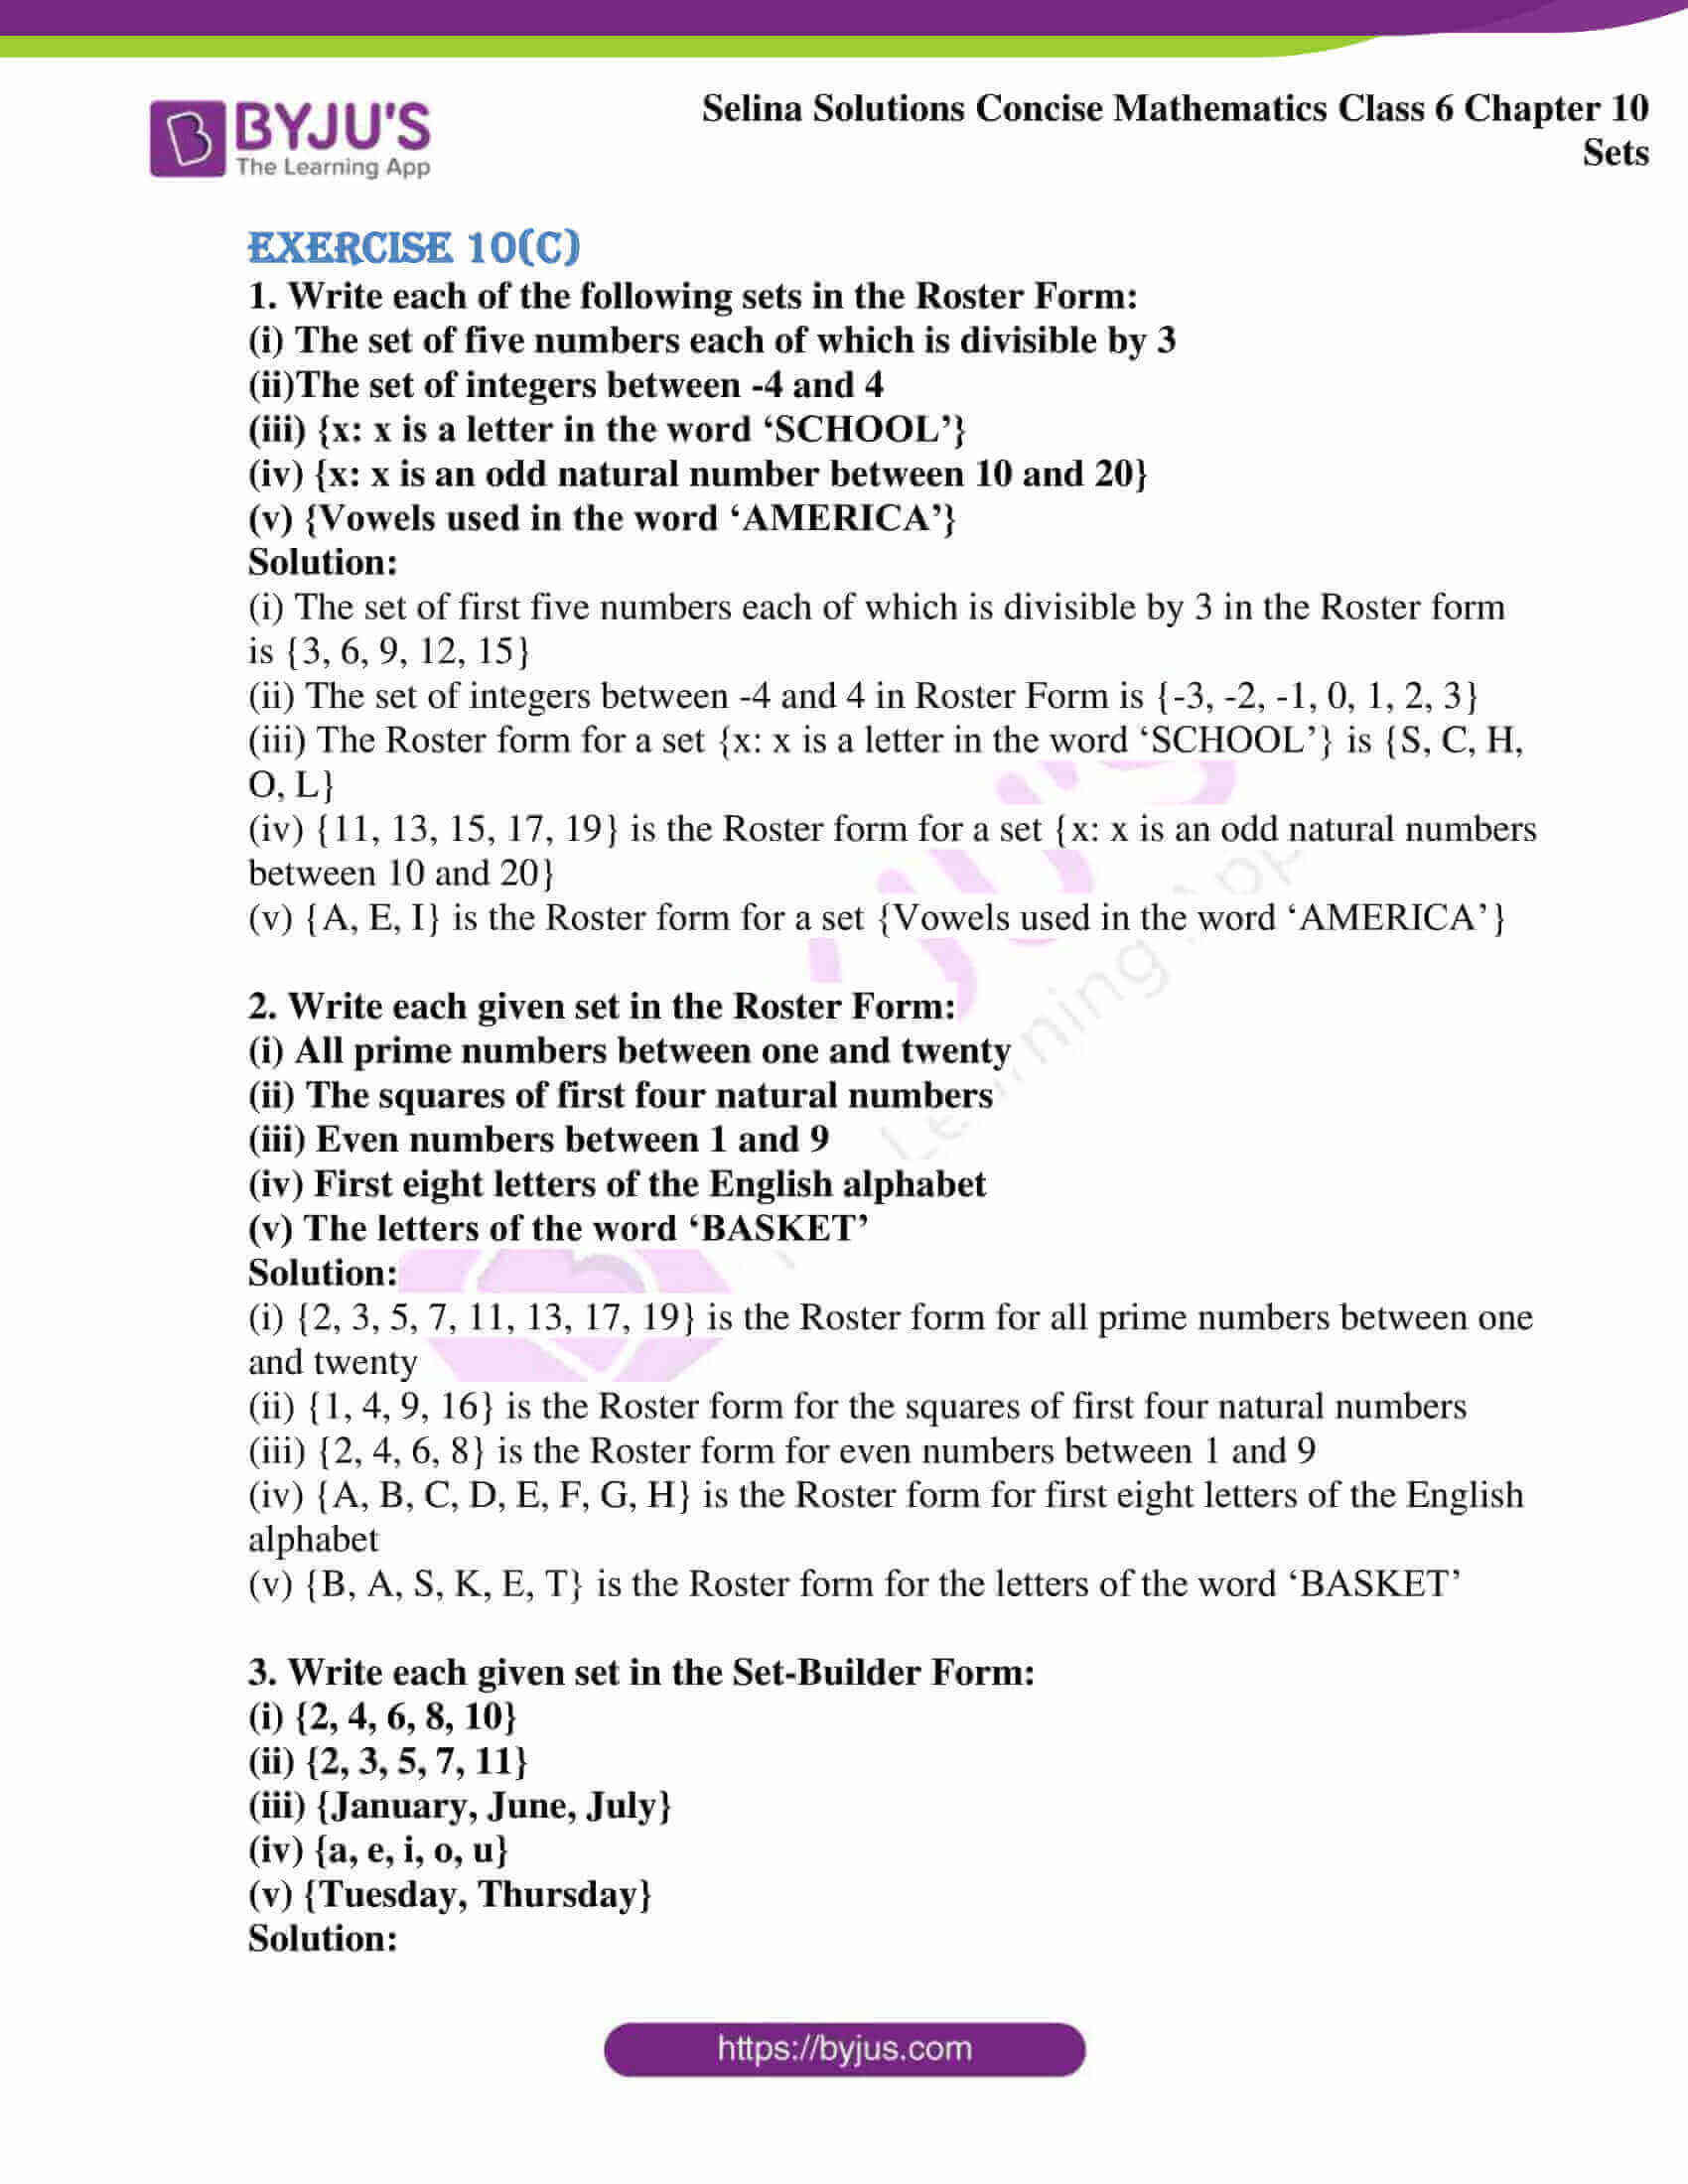 selina solution concise maths class 6 chapter 10 ex c 1